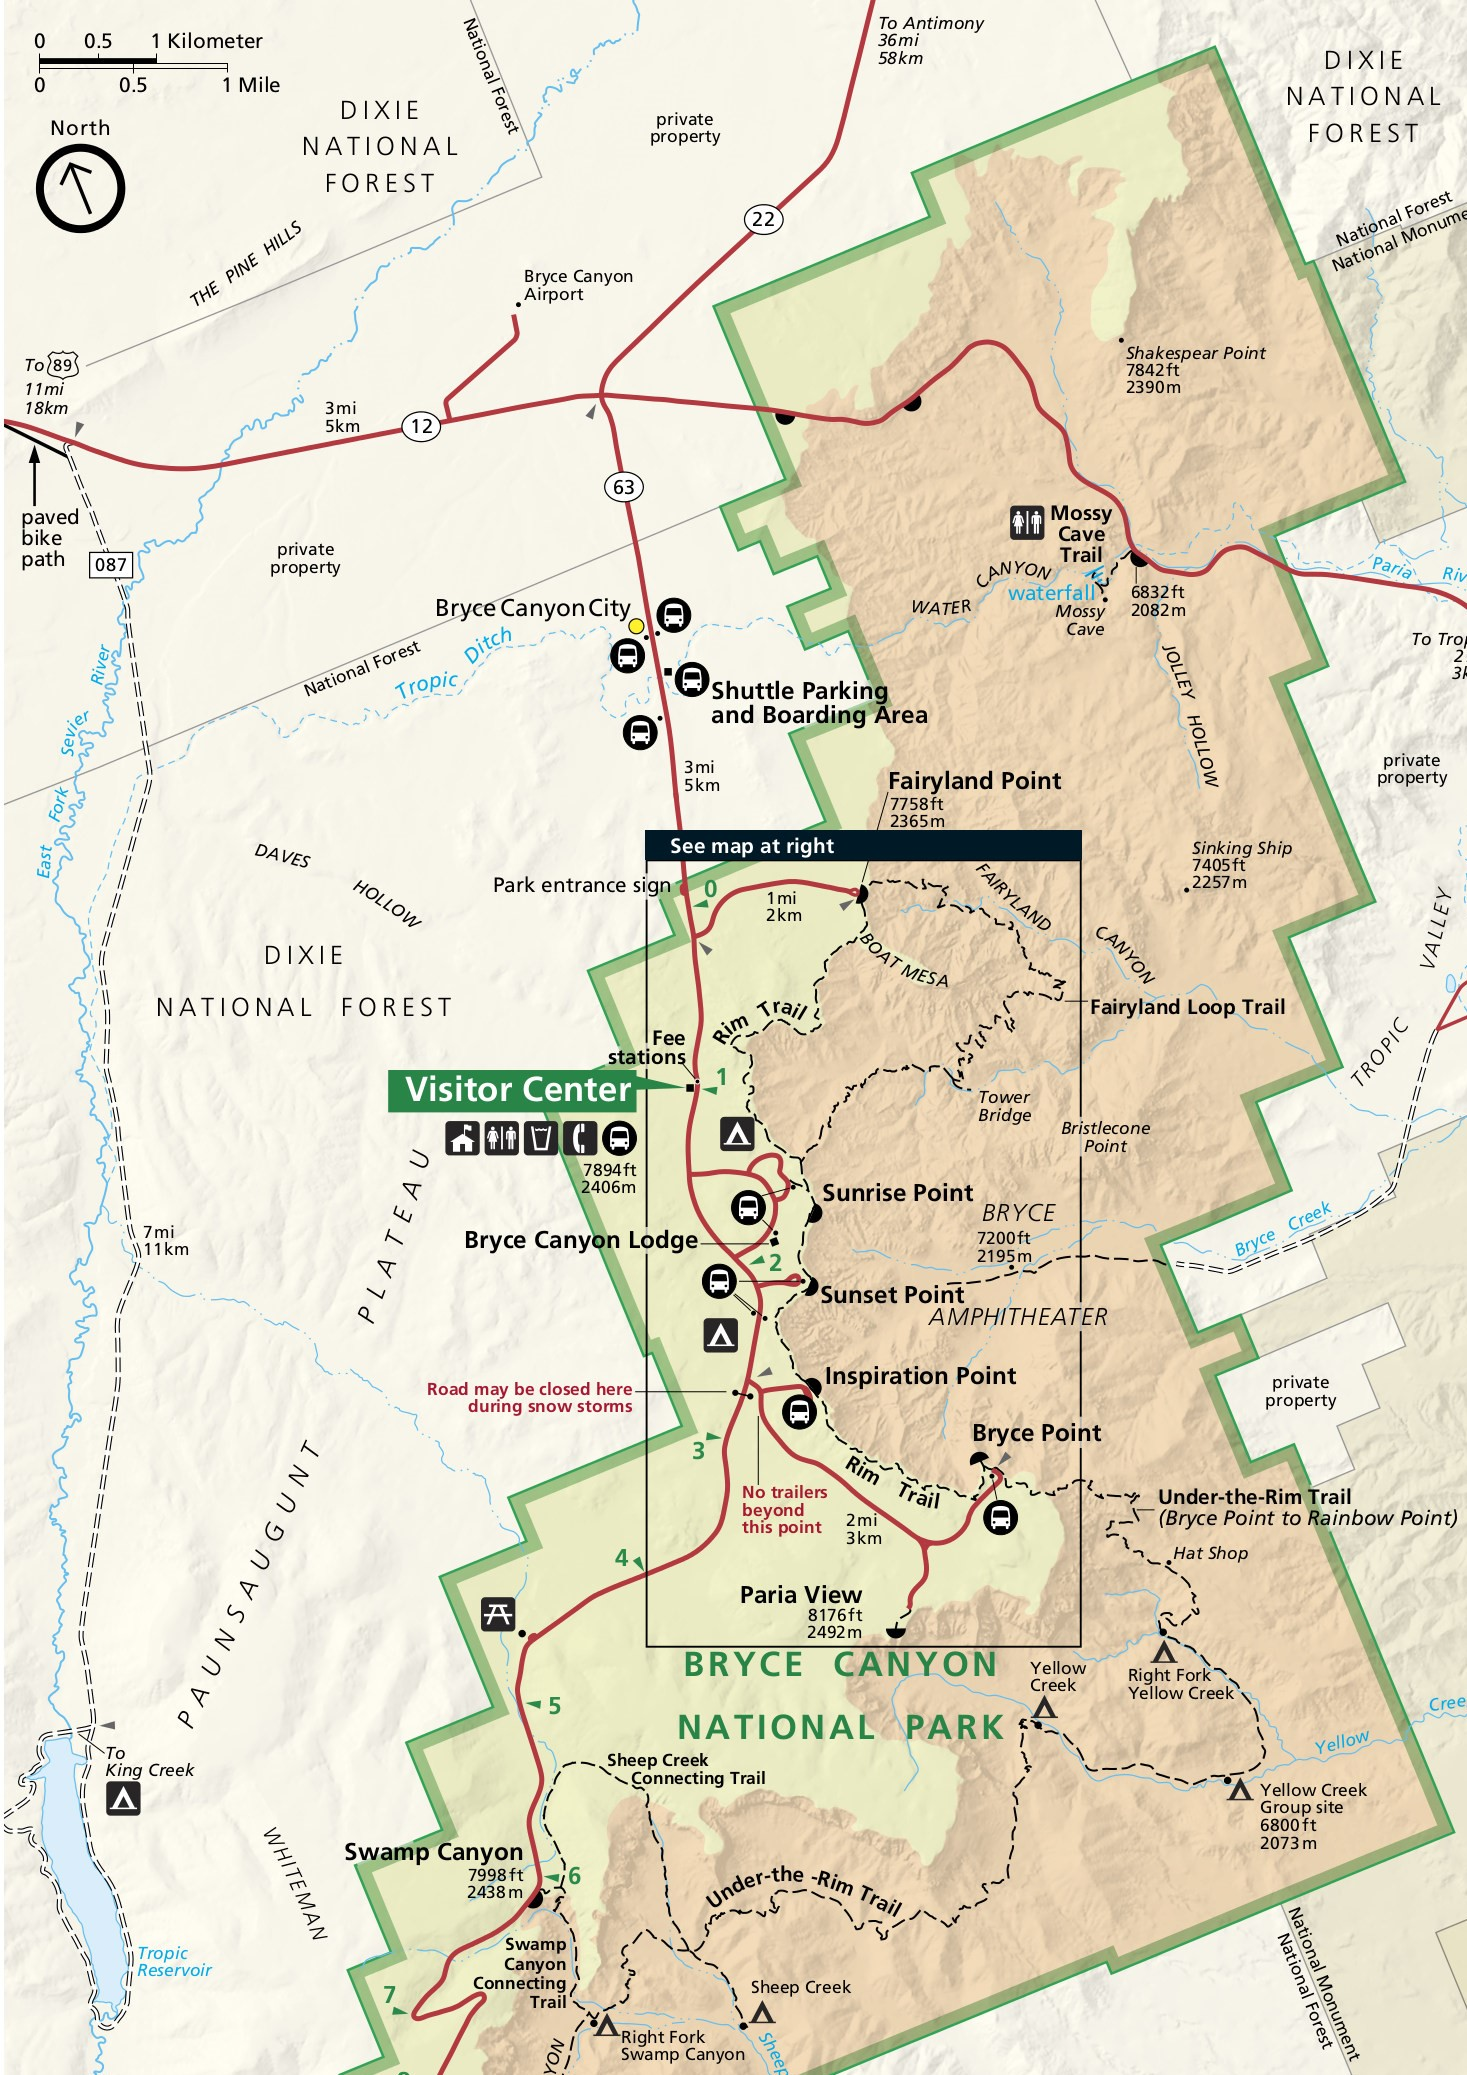 bryce-canyon-national-park-map